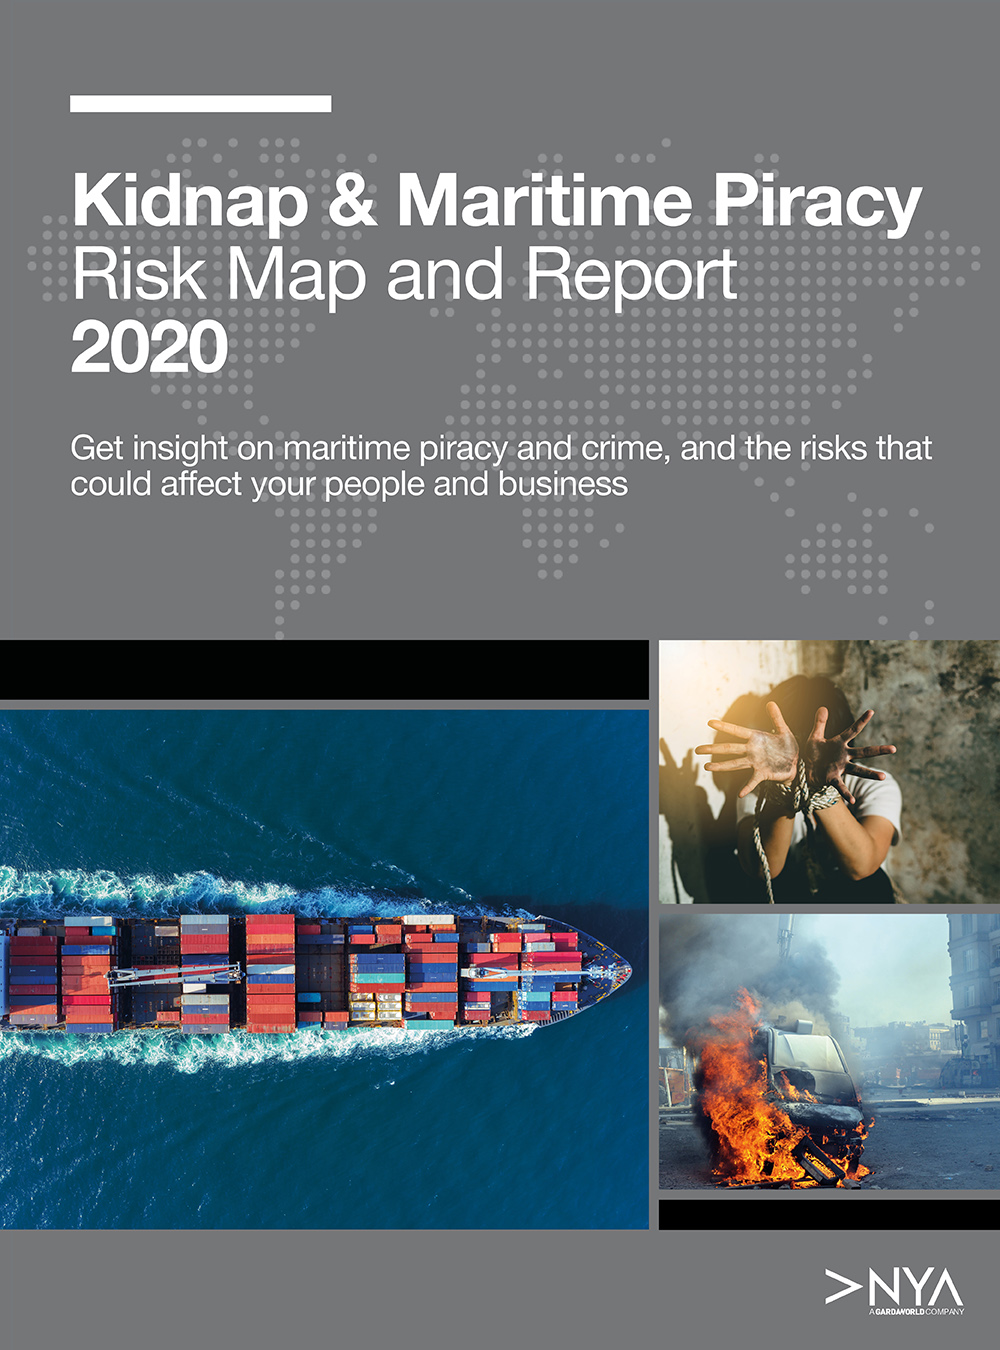 Kidnap and Maritime Piracy Risk Map and Report 2020